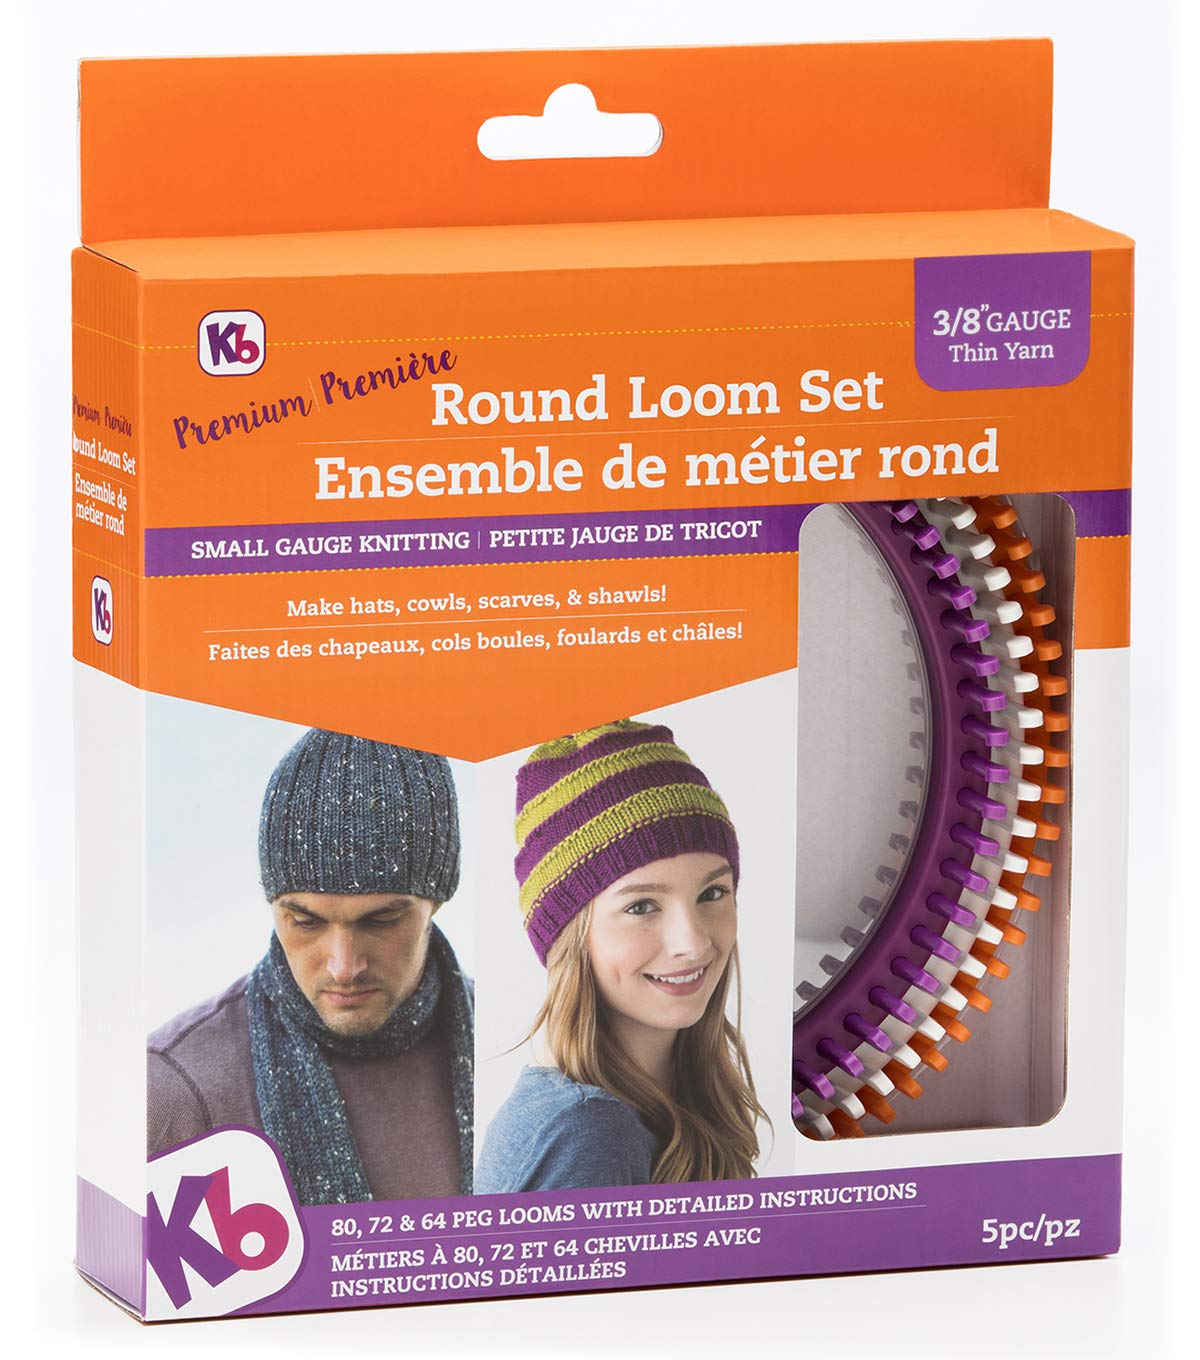 Authentic Knitting Board ' 'Premium' Round Loom Set, 3/8'' Gauge